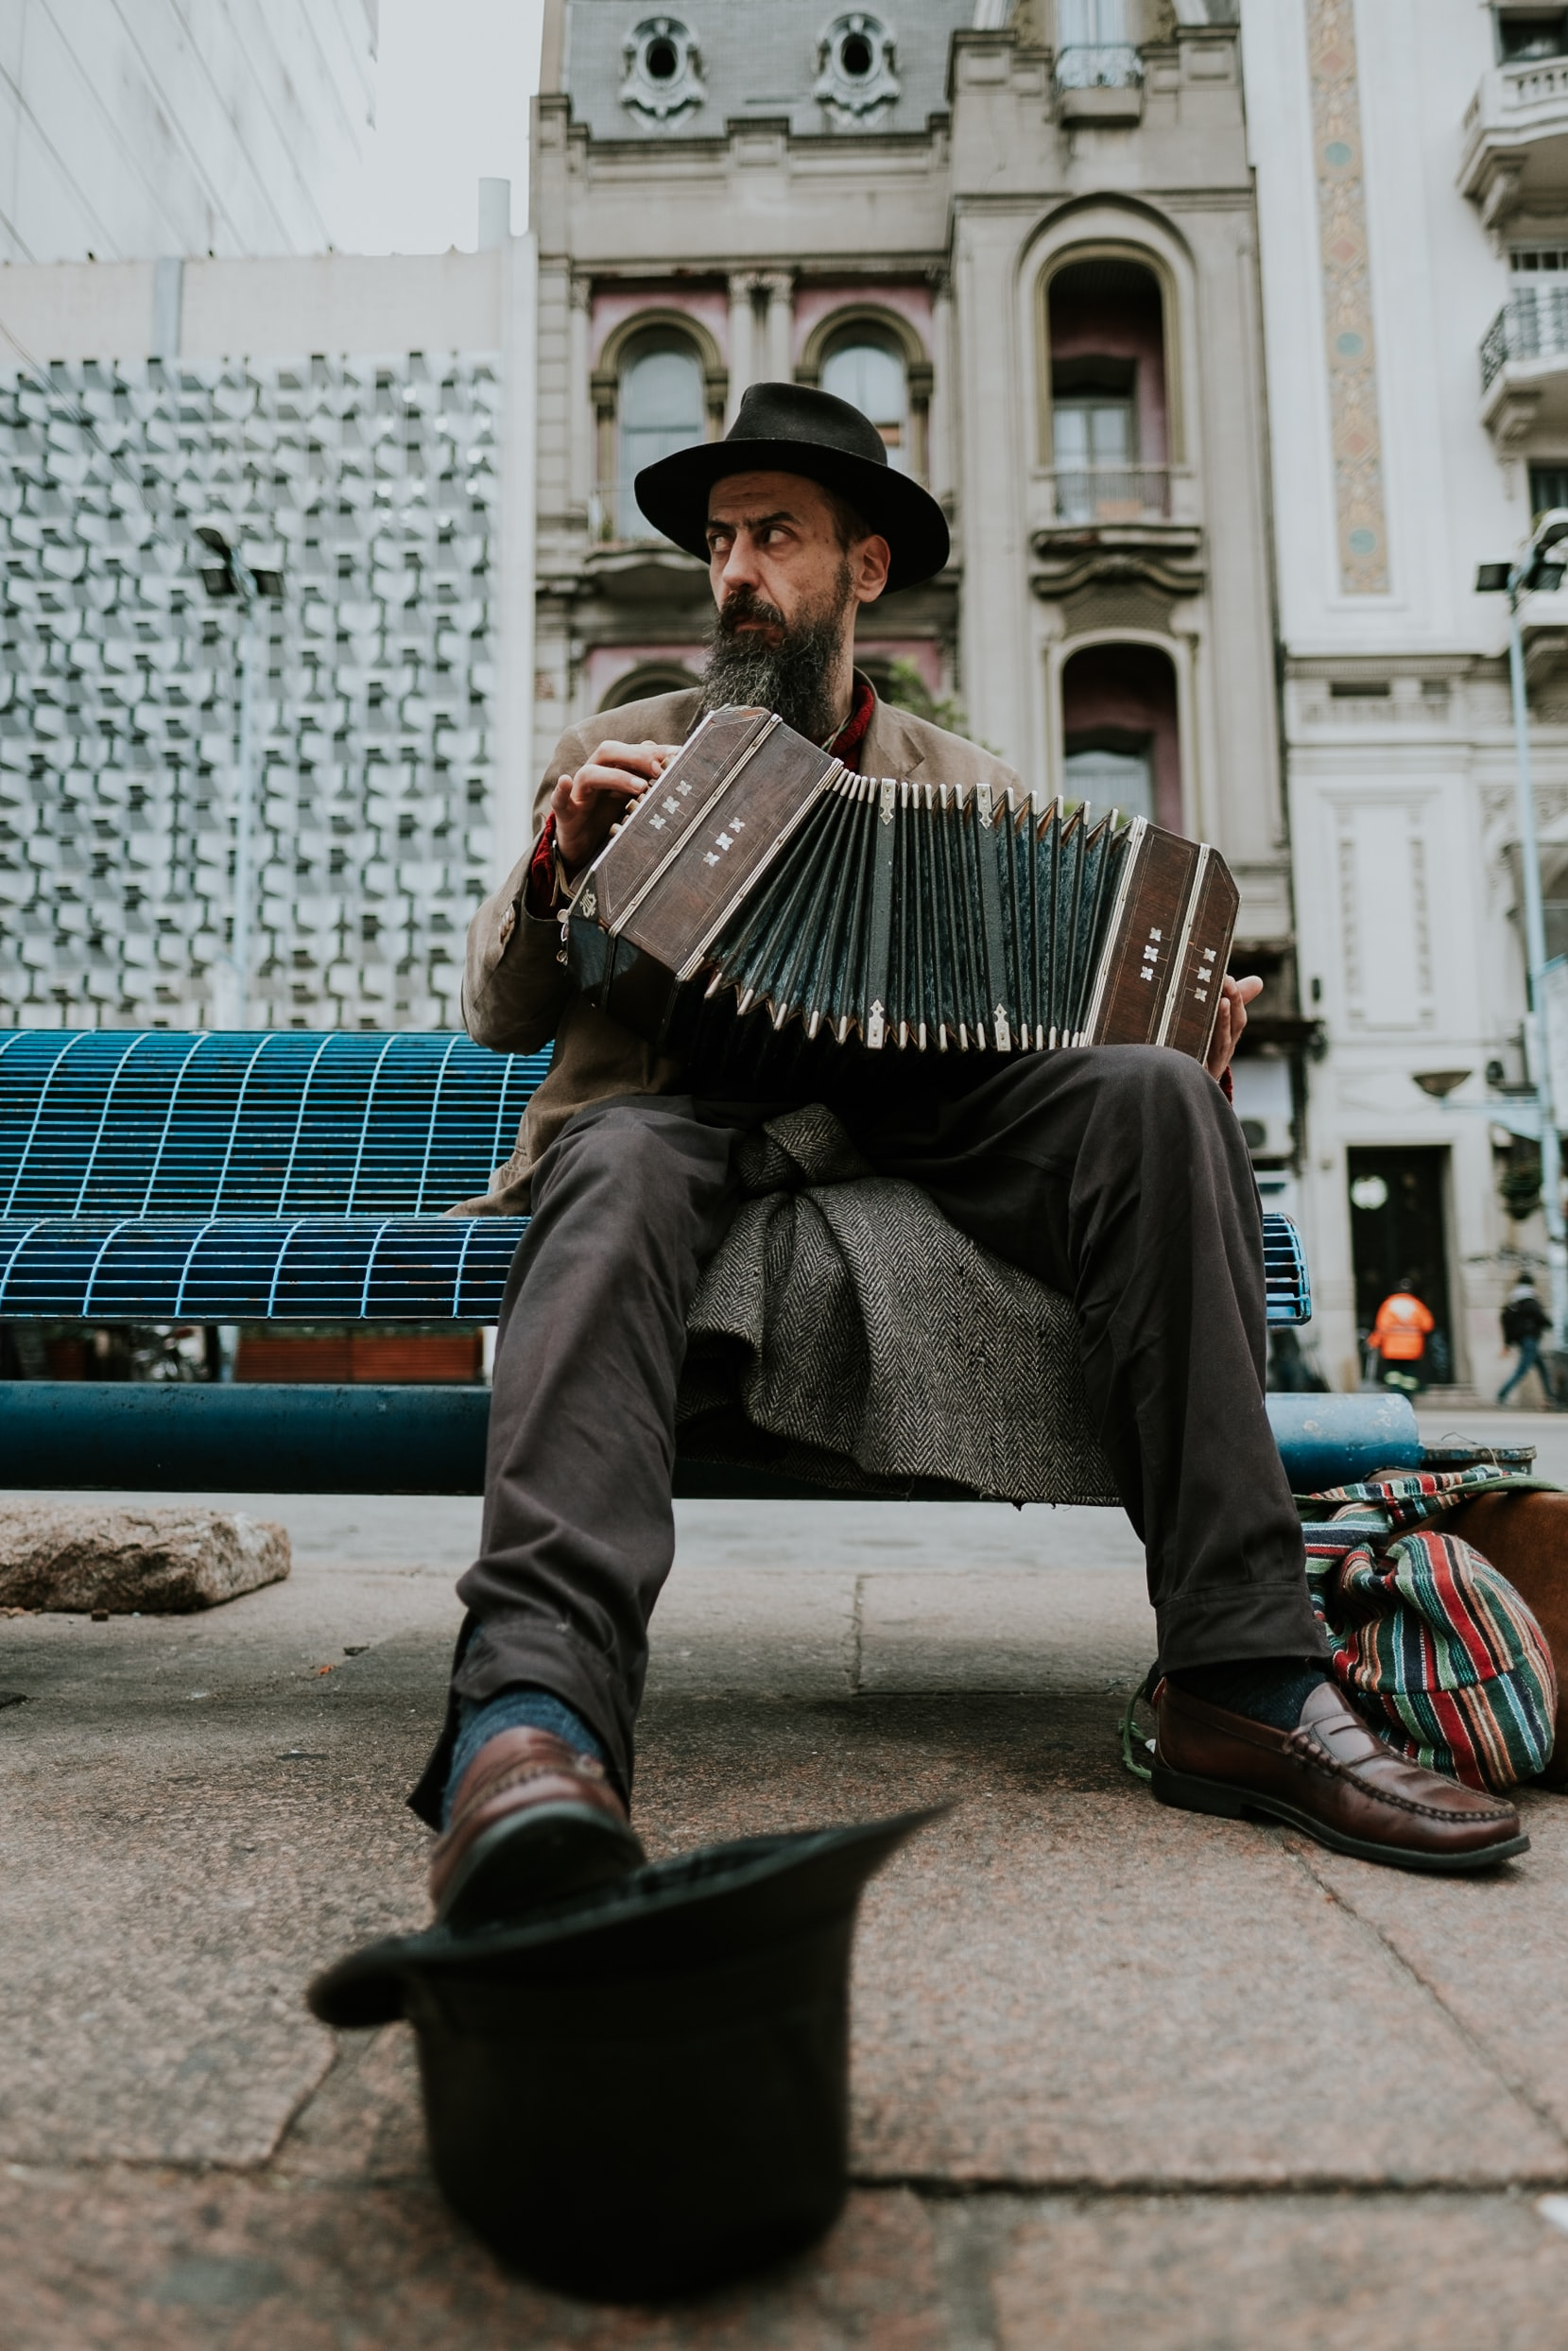 man sitting on bench playing accordion